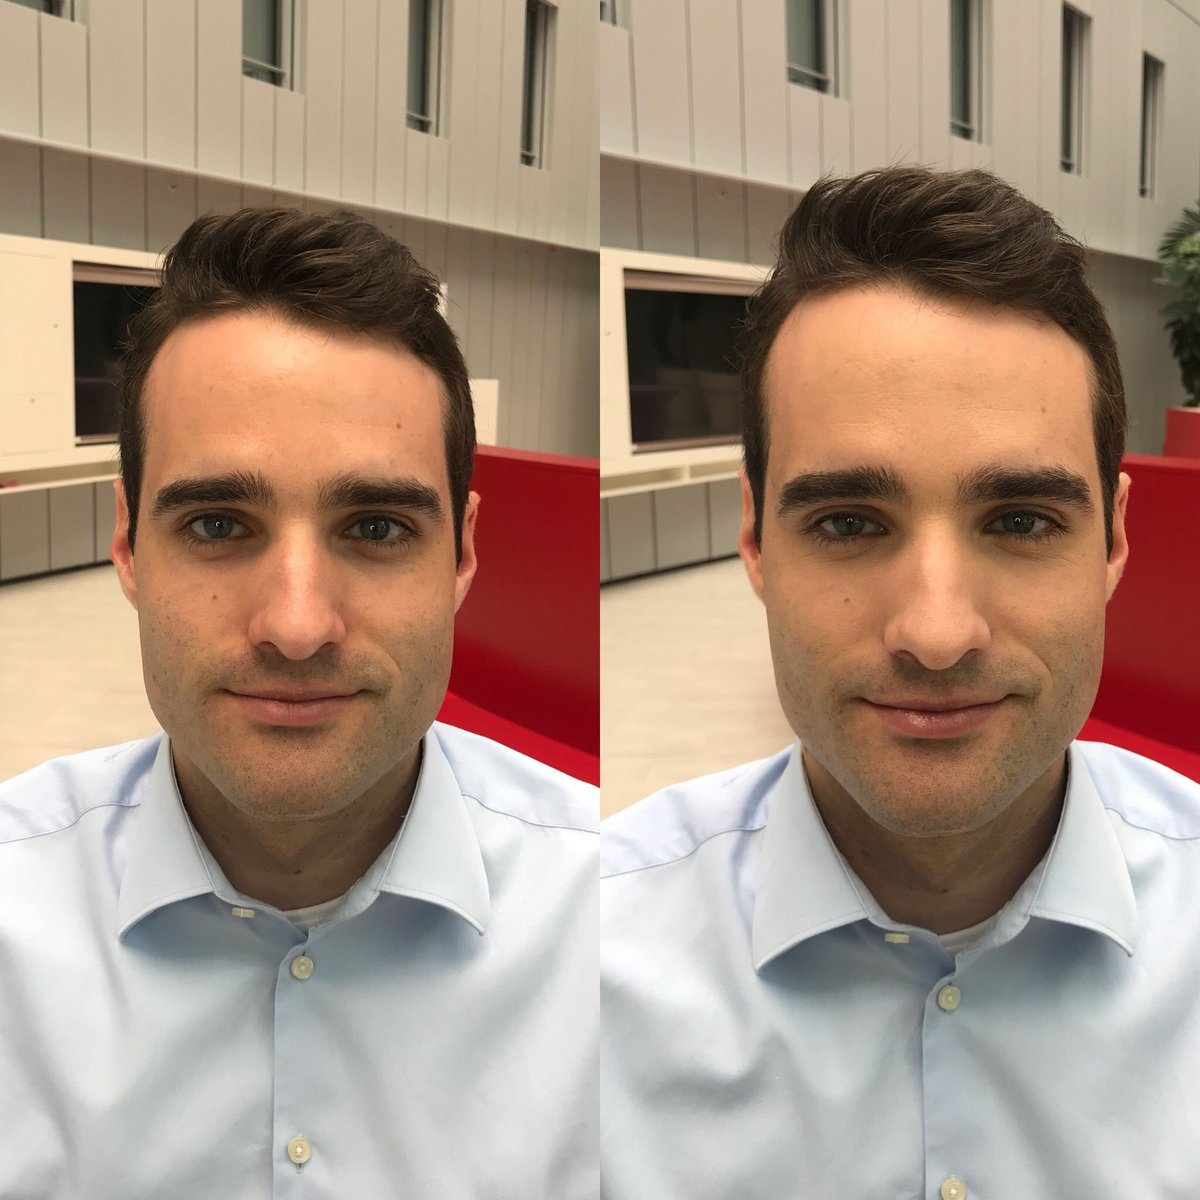 Before and After Male Makeup Natalie Setareh Moritz